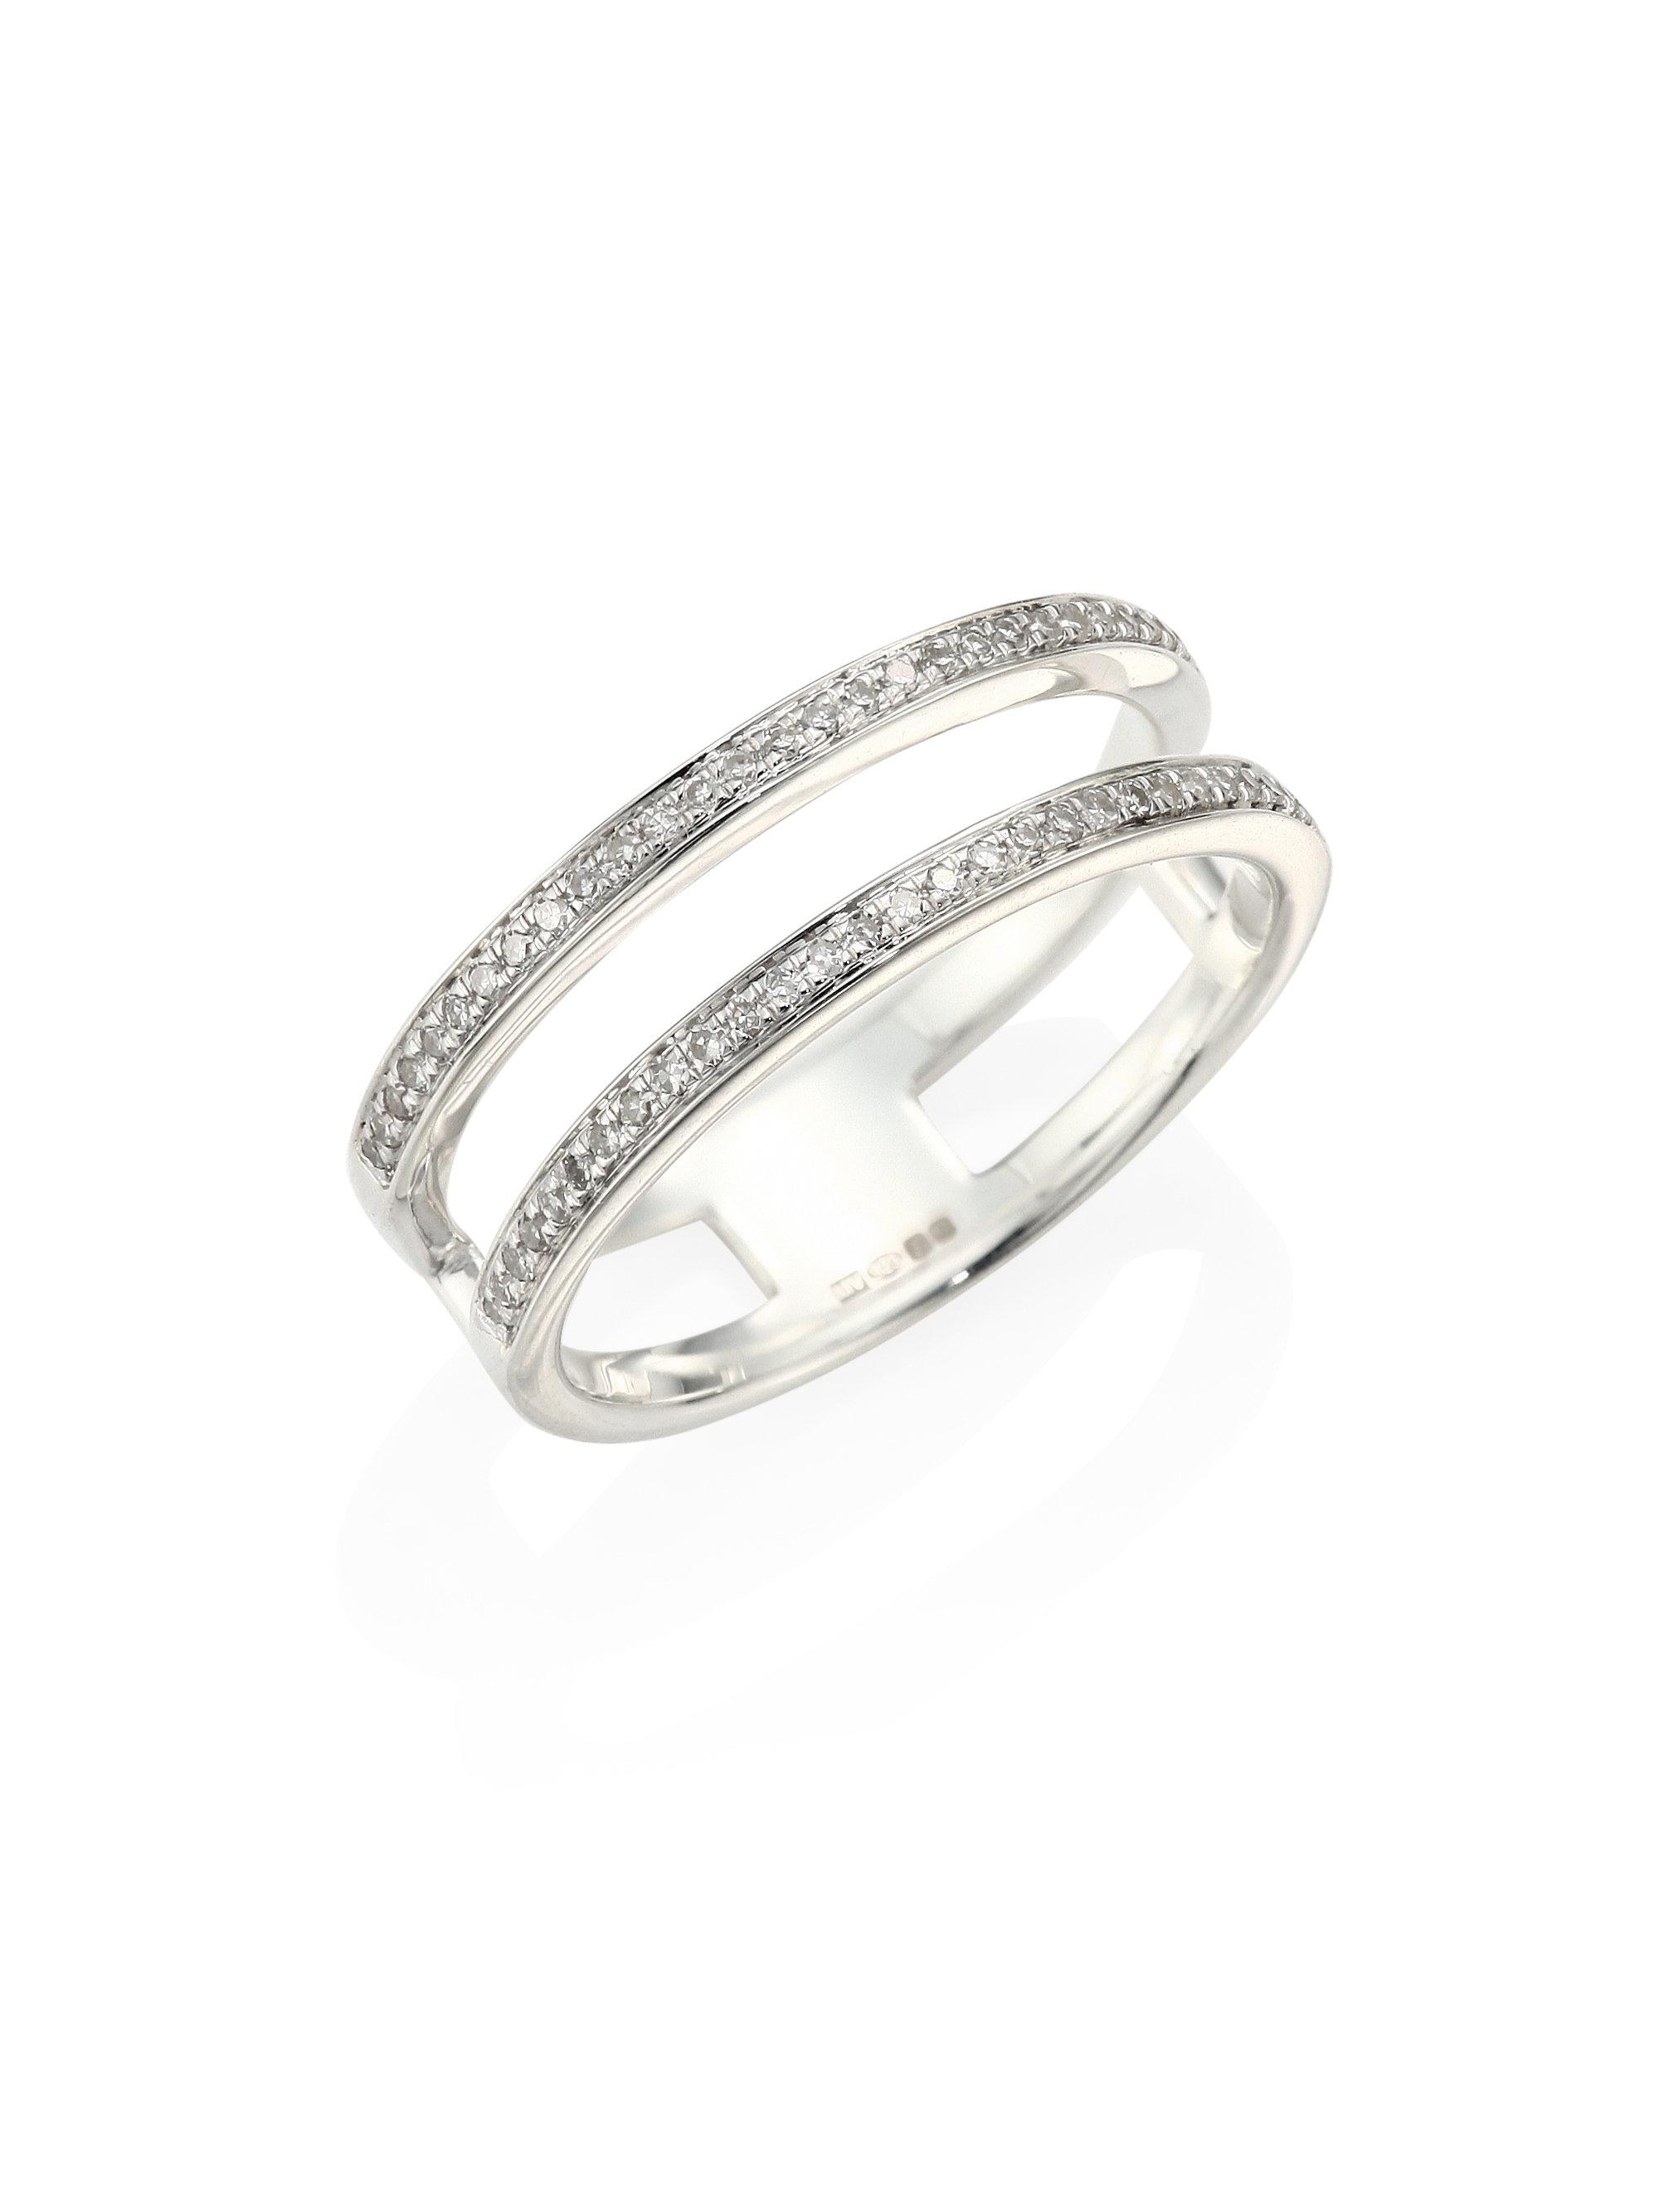 Skinny Diamond Double Band Ring, Sterling Silver Monica Vinader